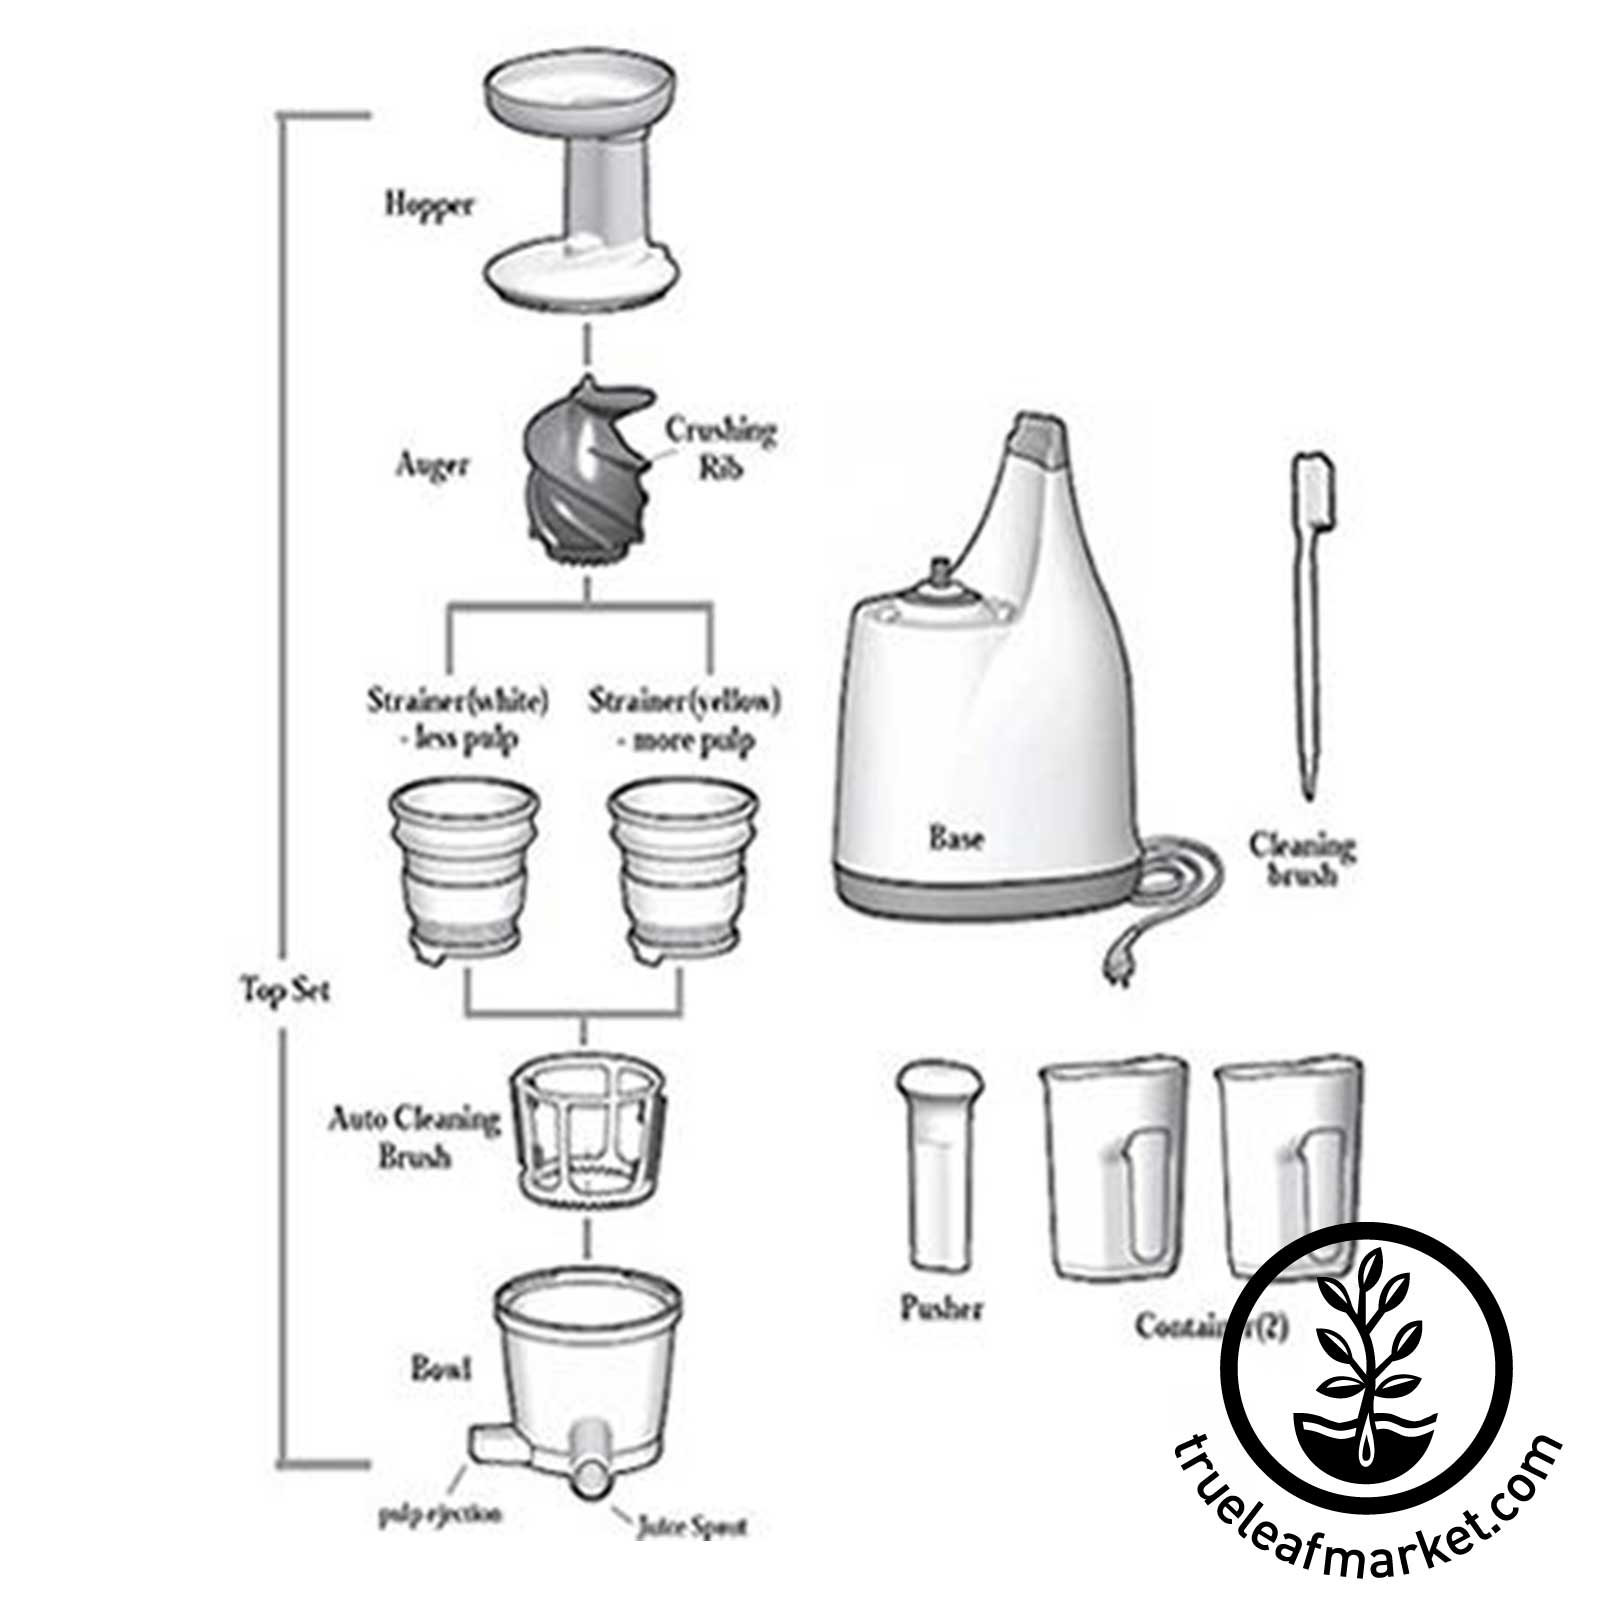 Omega VRT350 HD Juicer Parts Diagram